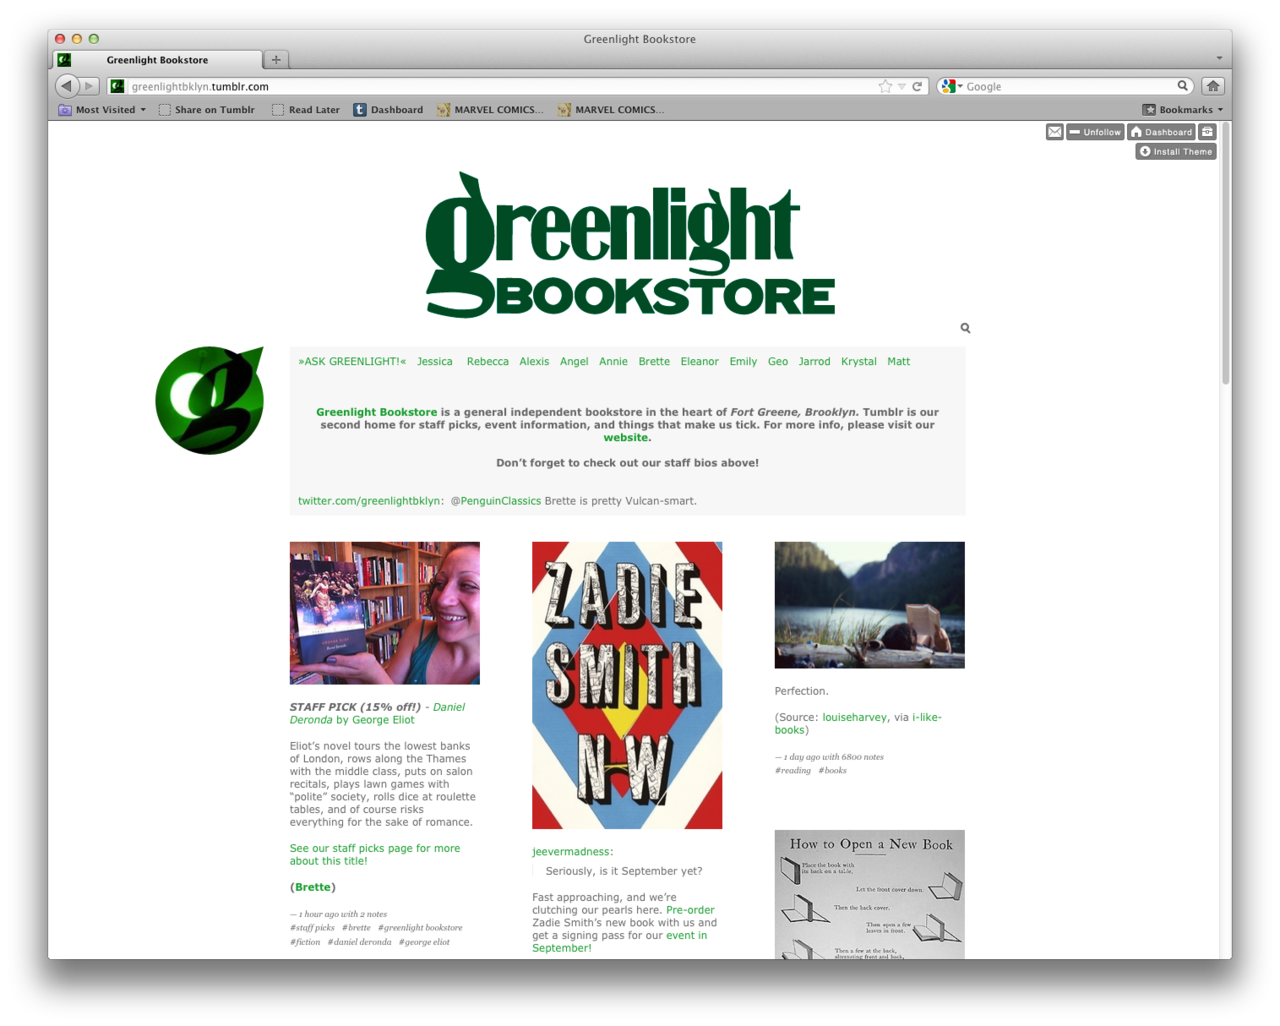 Welcome, Greenlight Bookstore!